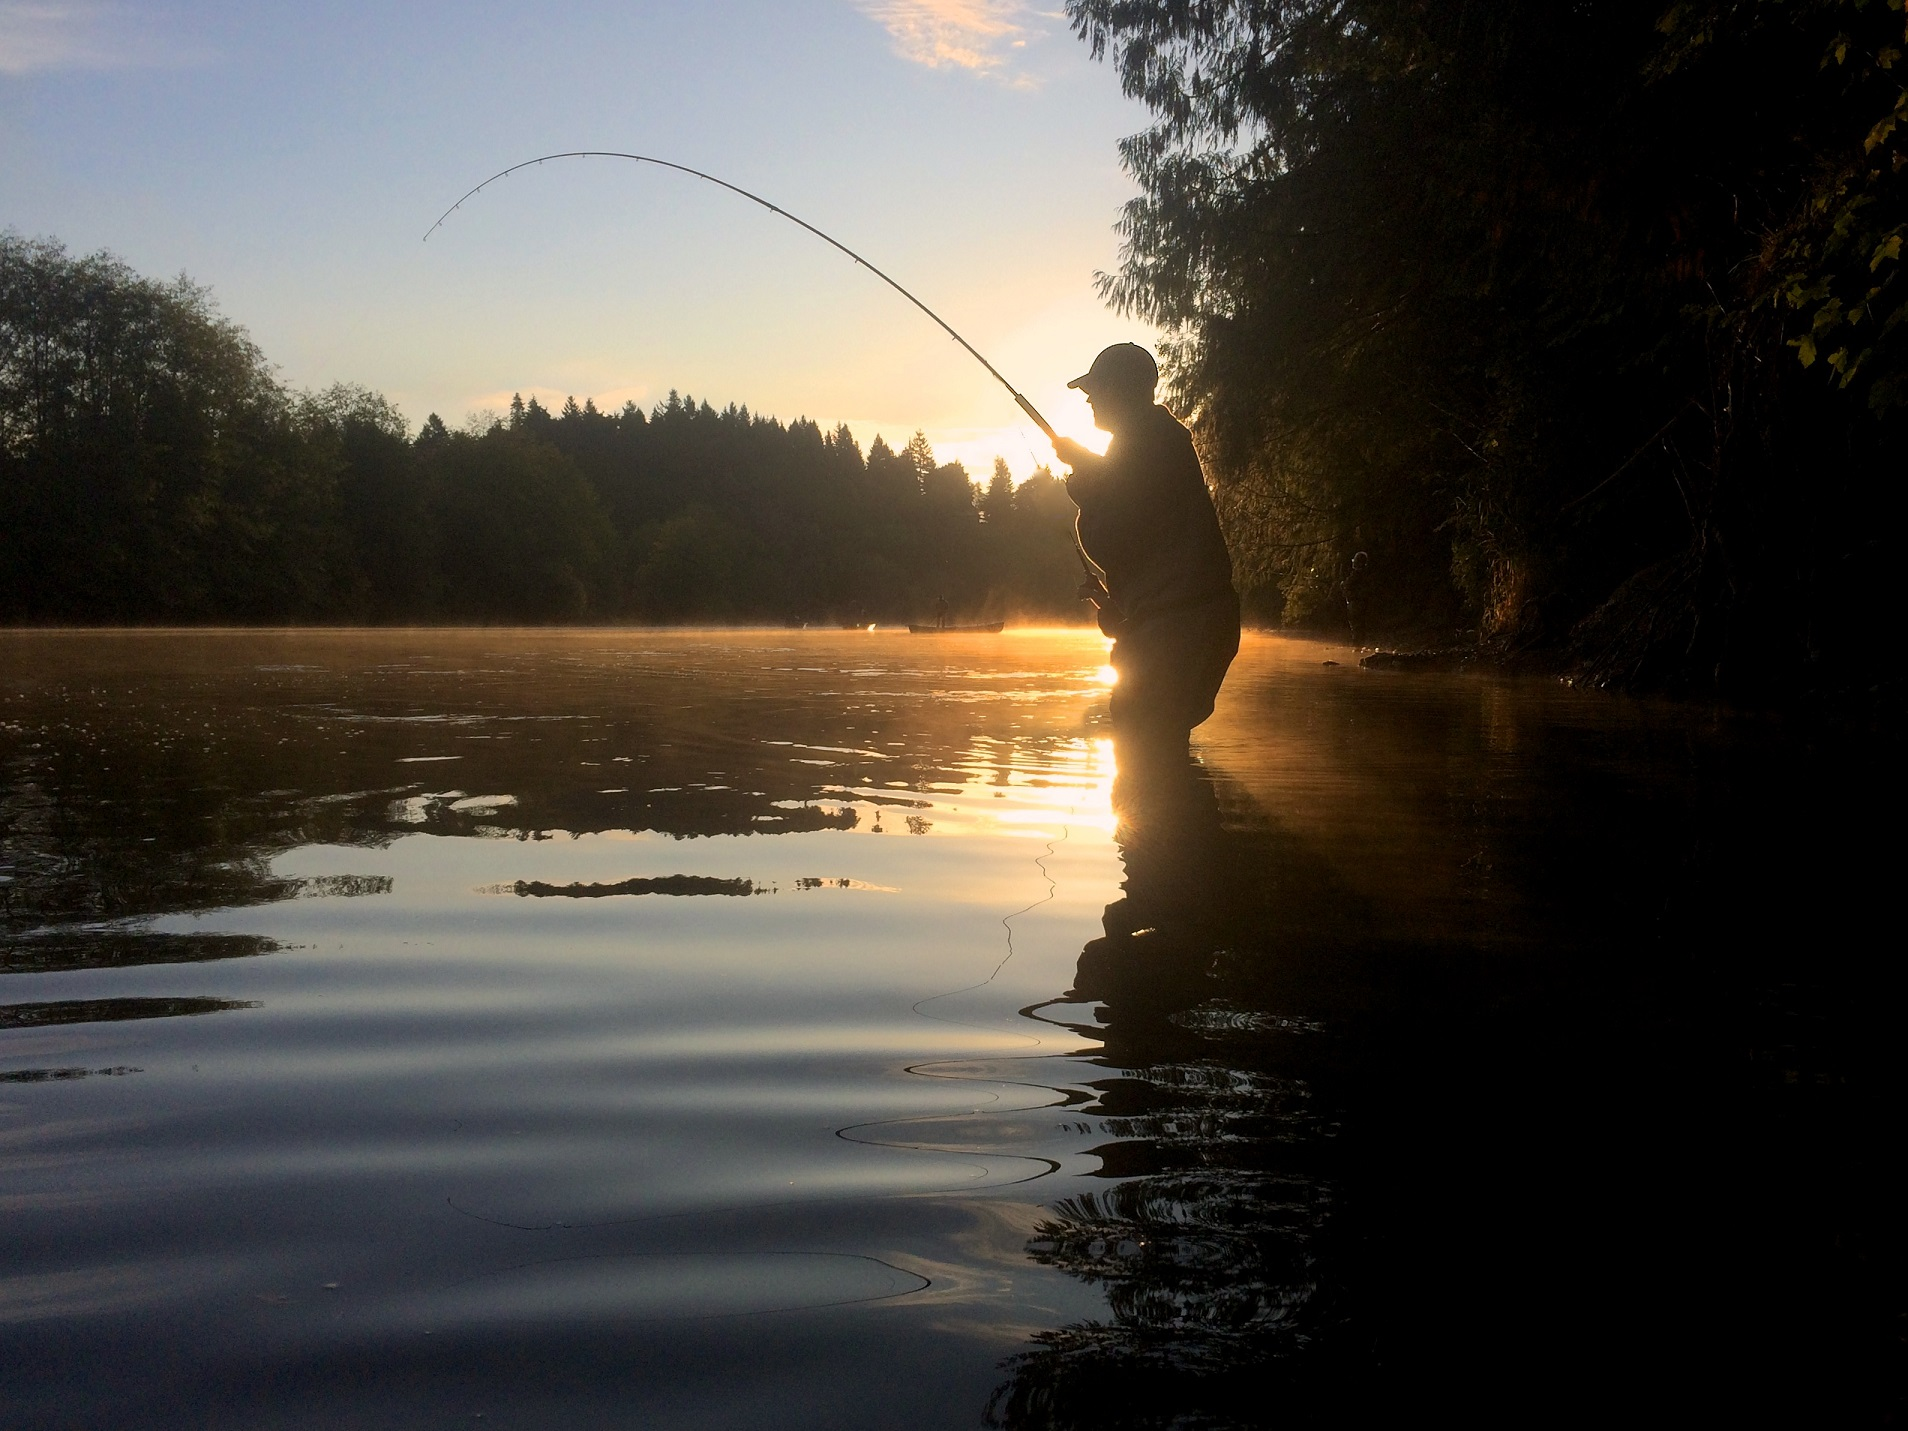 Fishing on the Stamp River, Port Alberni